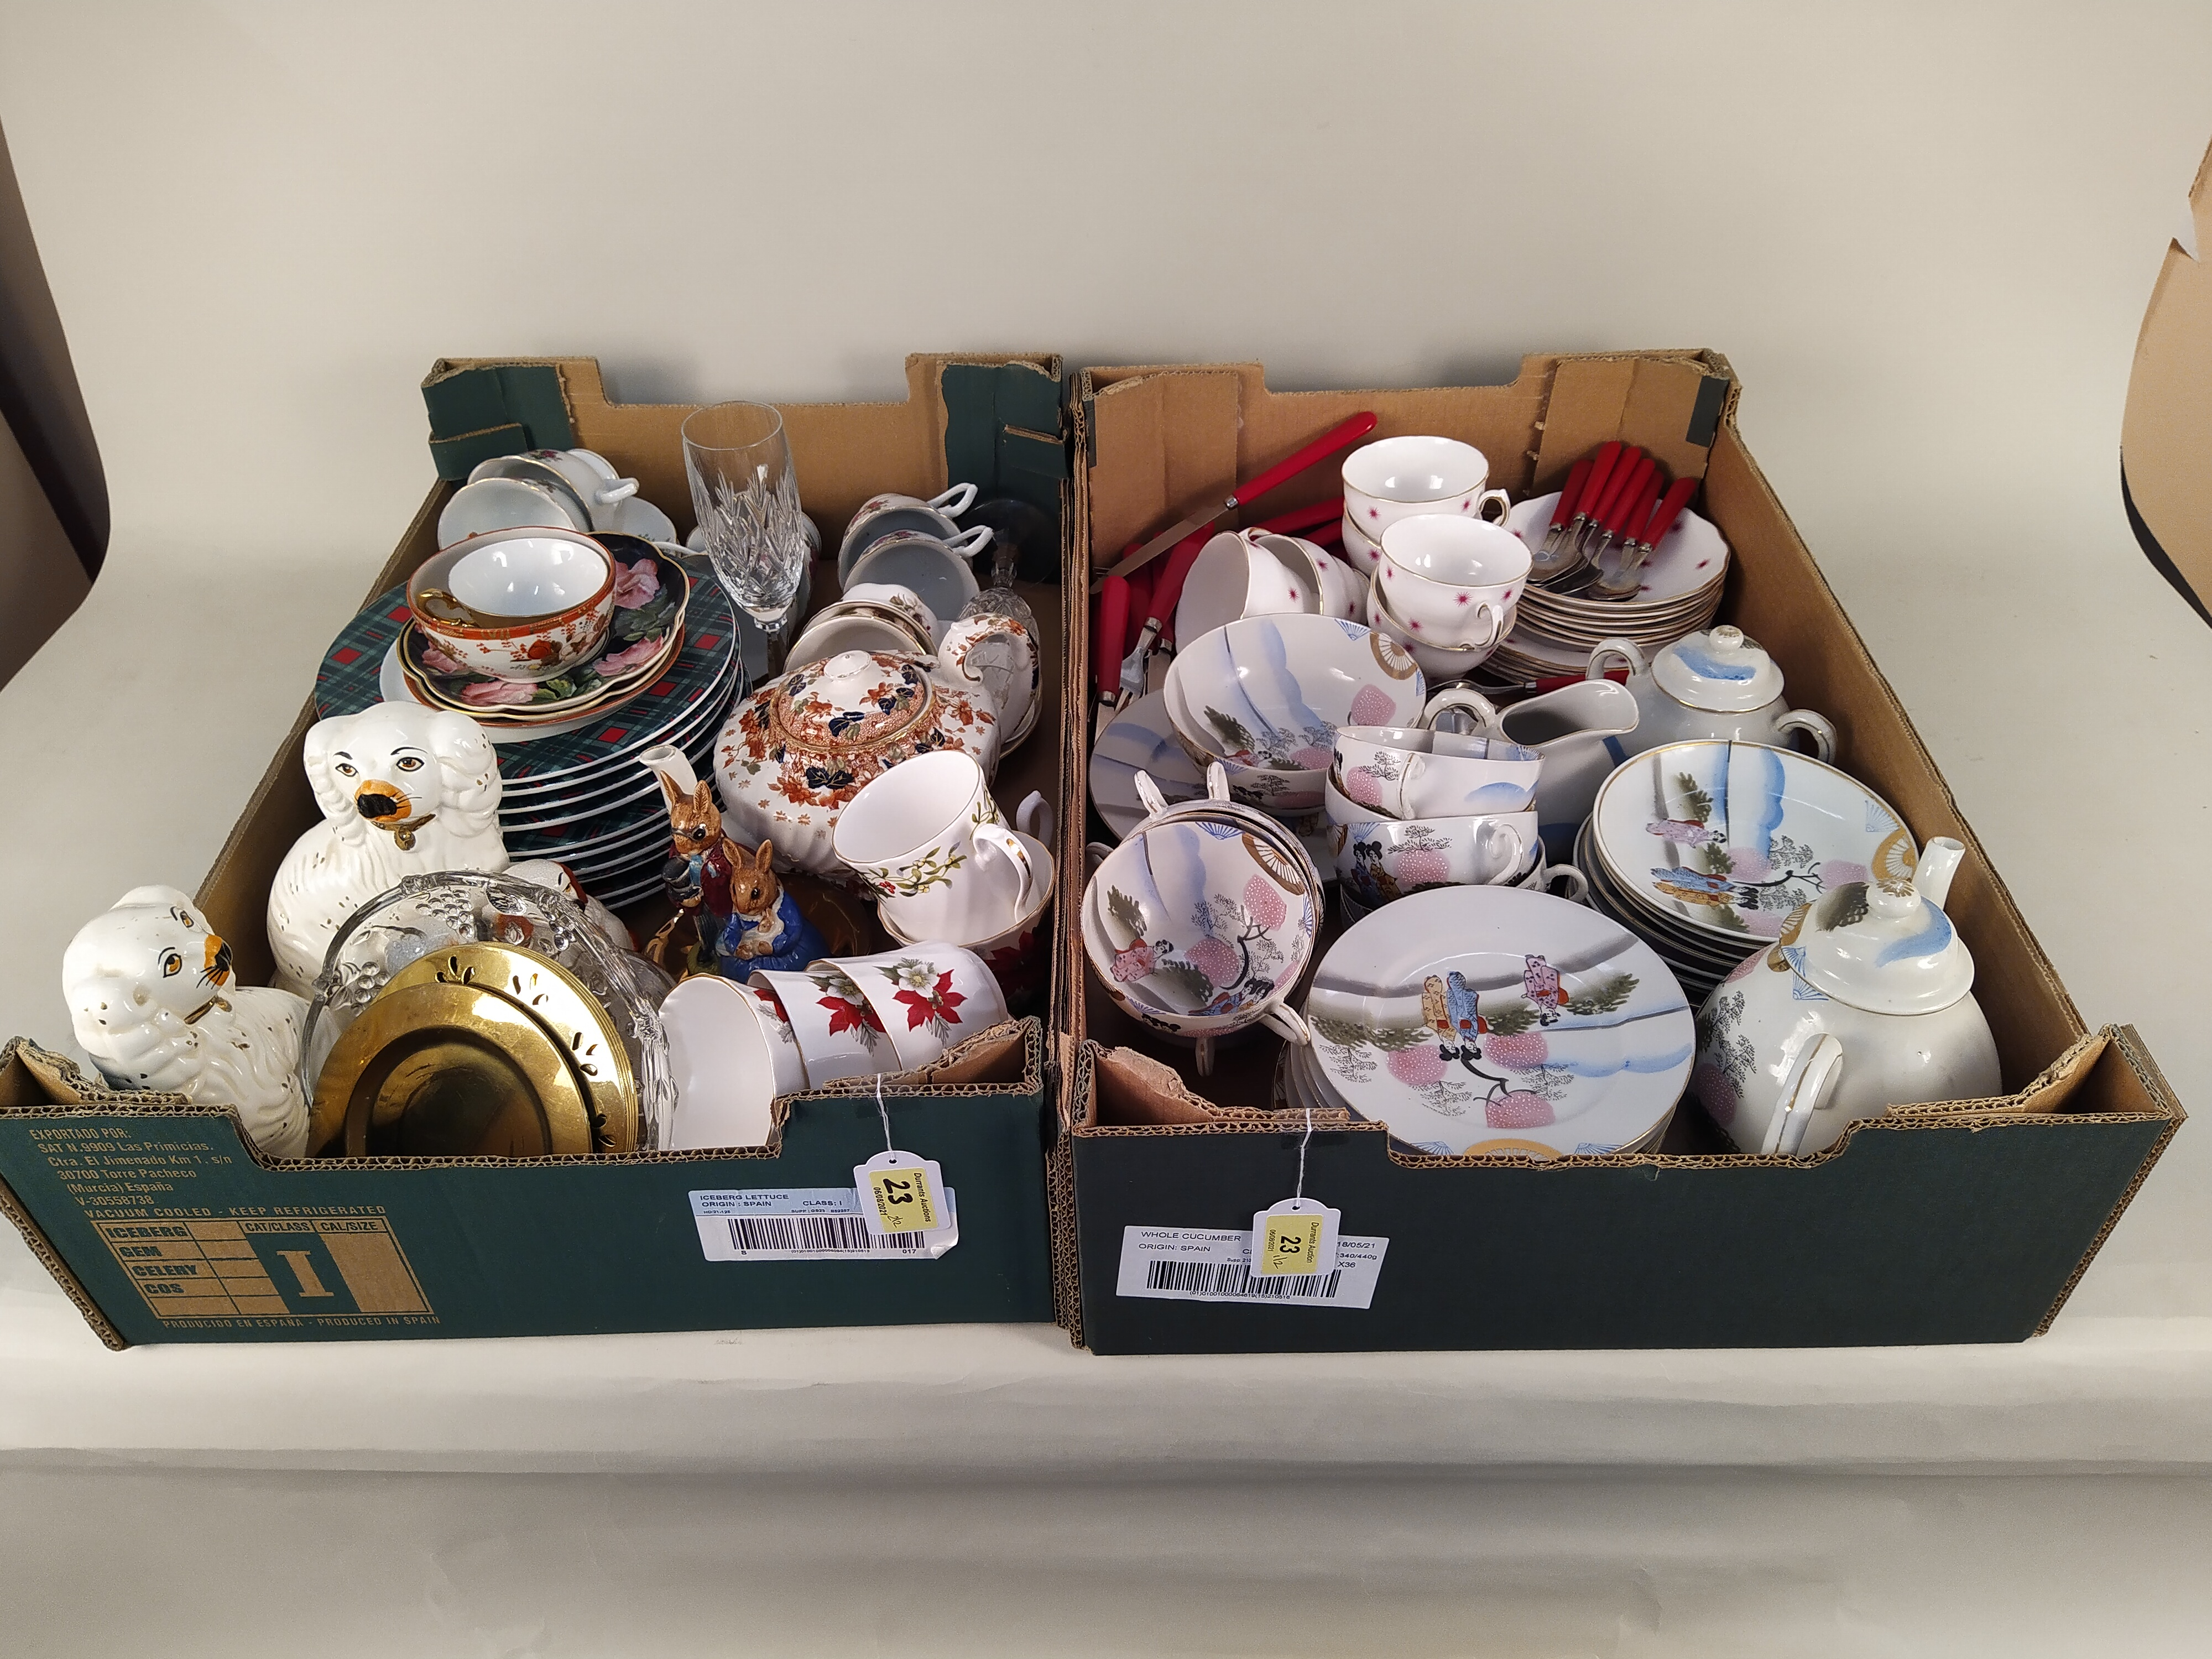 Mixed ceramics including a Japanese tea set and two pairs of Staffordshire style dogs